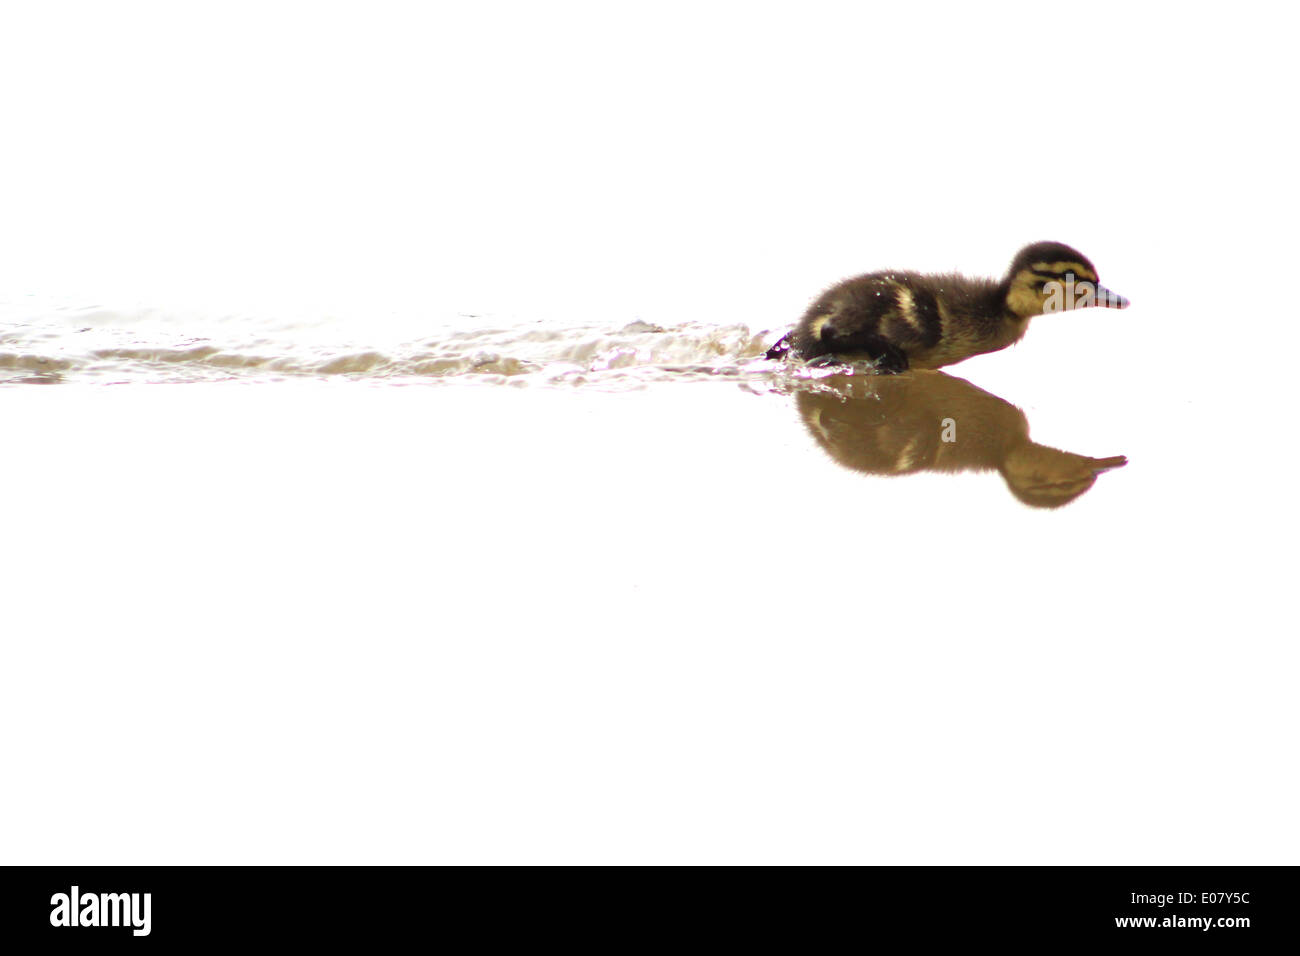 Mallard duckling running on water - Stock Image